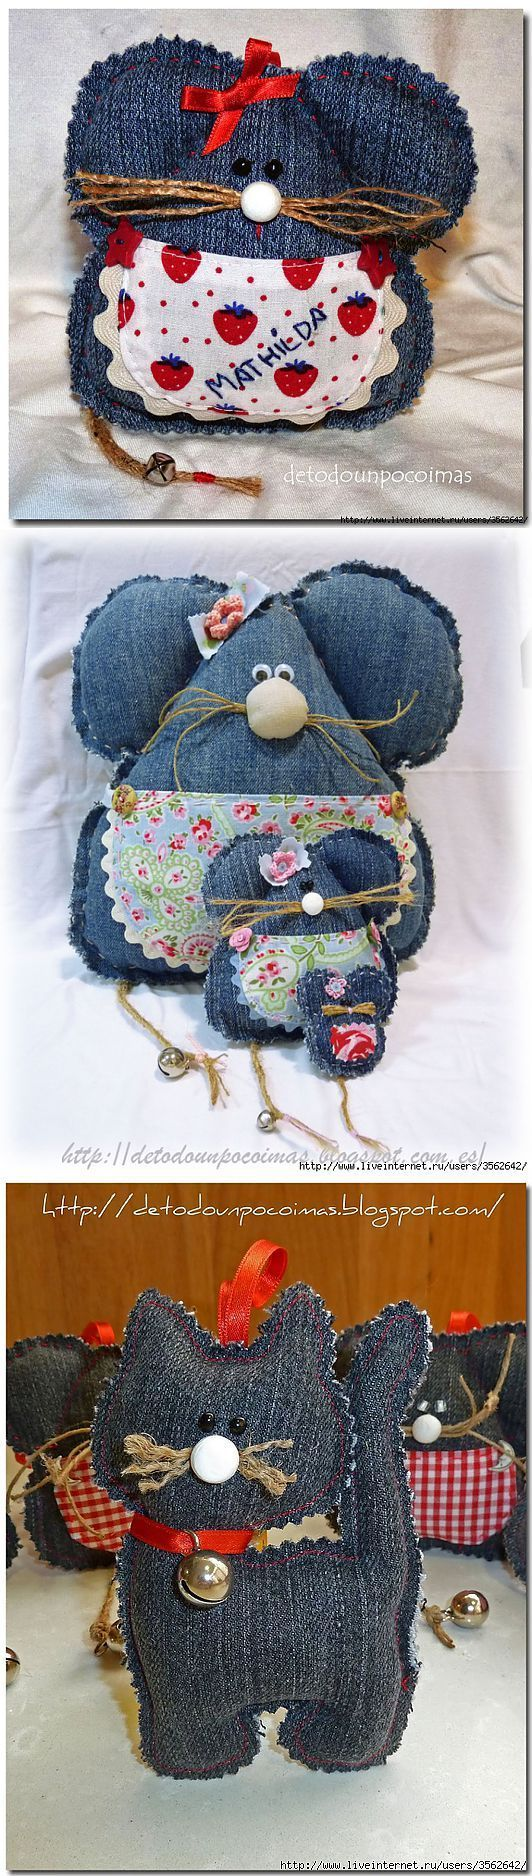 pot pourri idea with recycled jeans